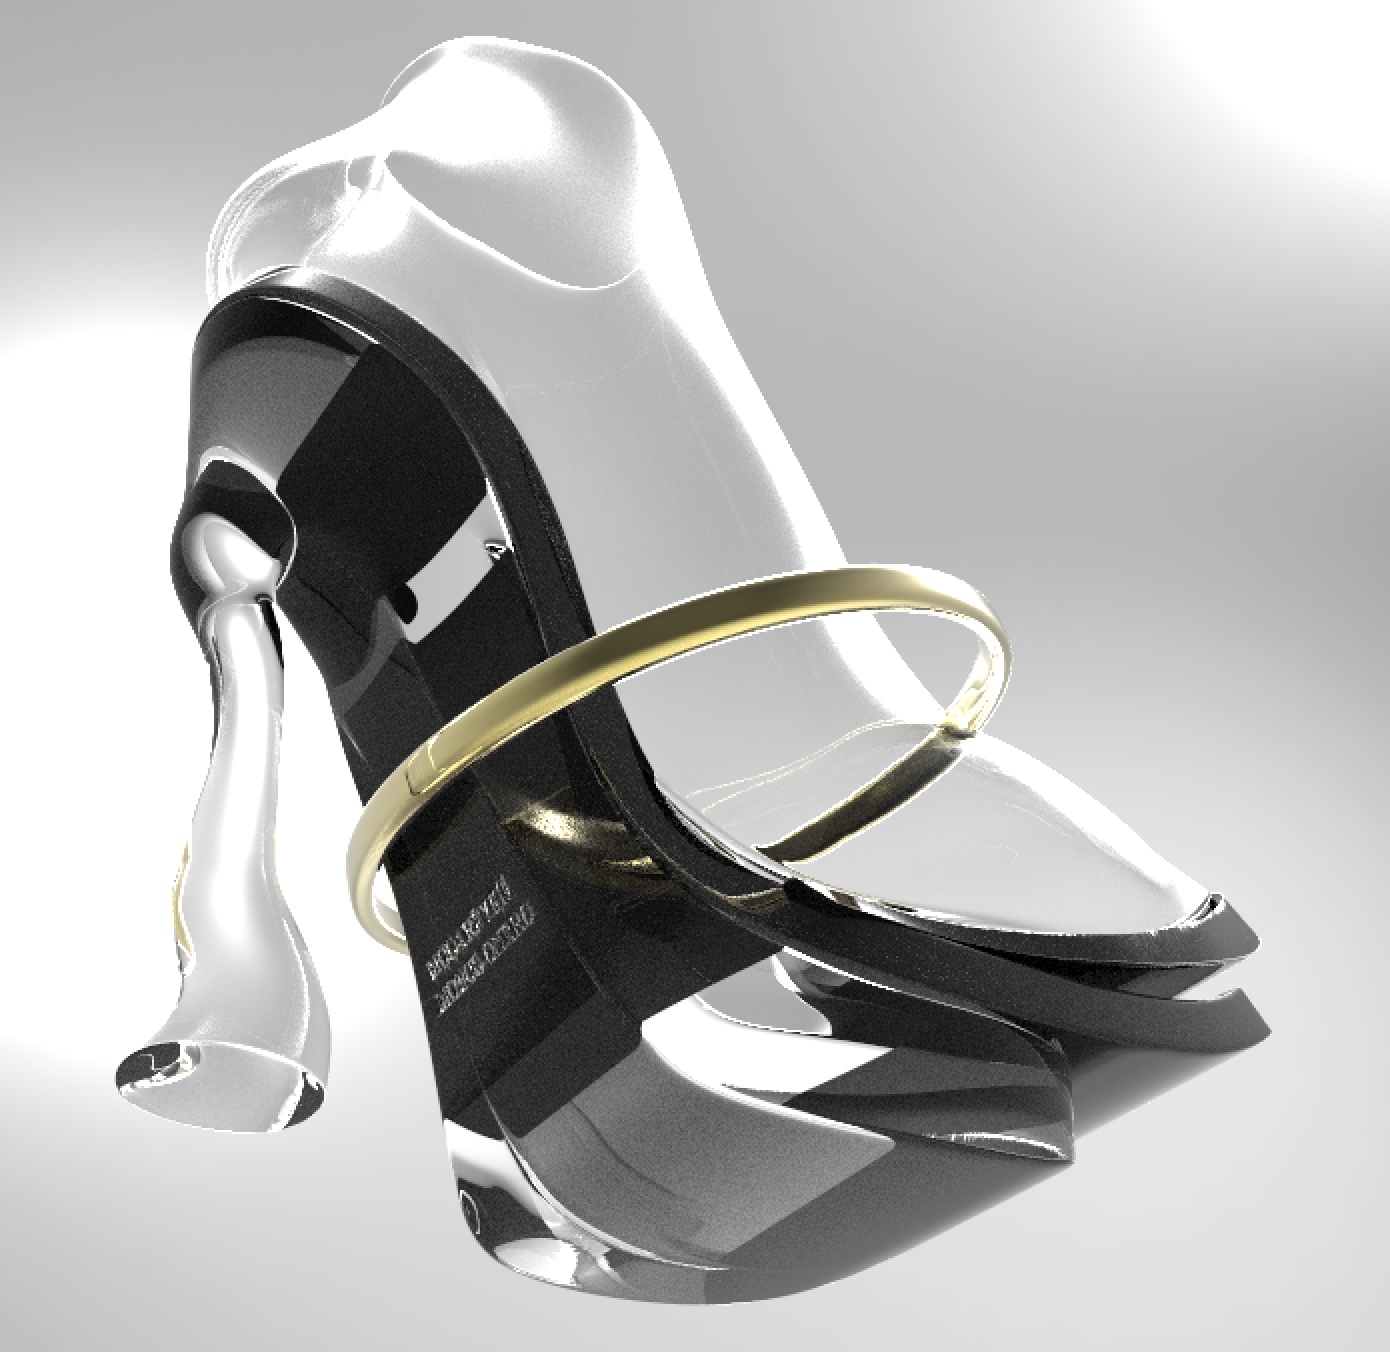 Bottom Up View to show stacked platform and heel